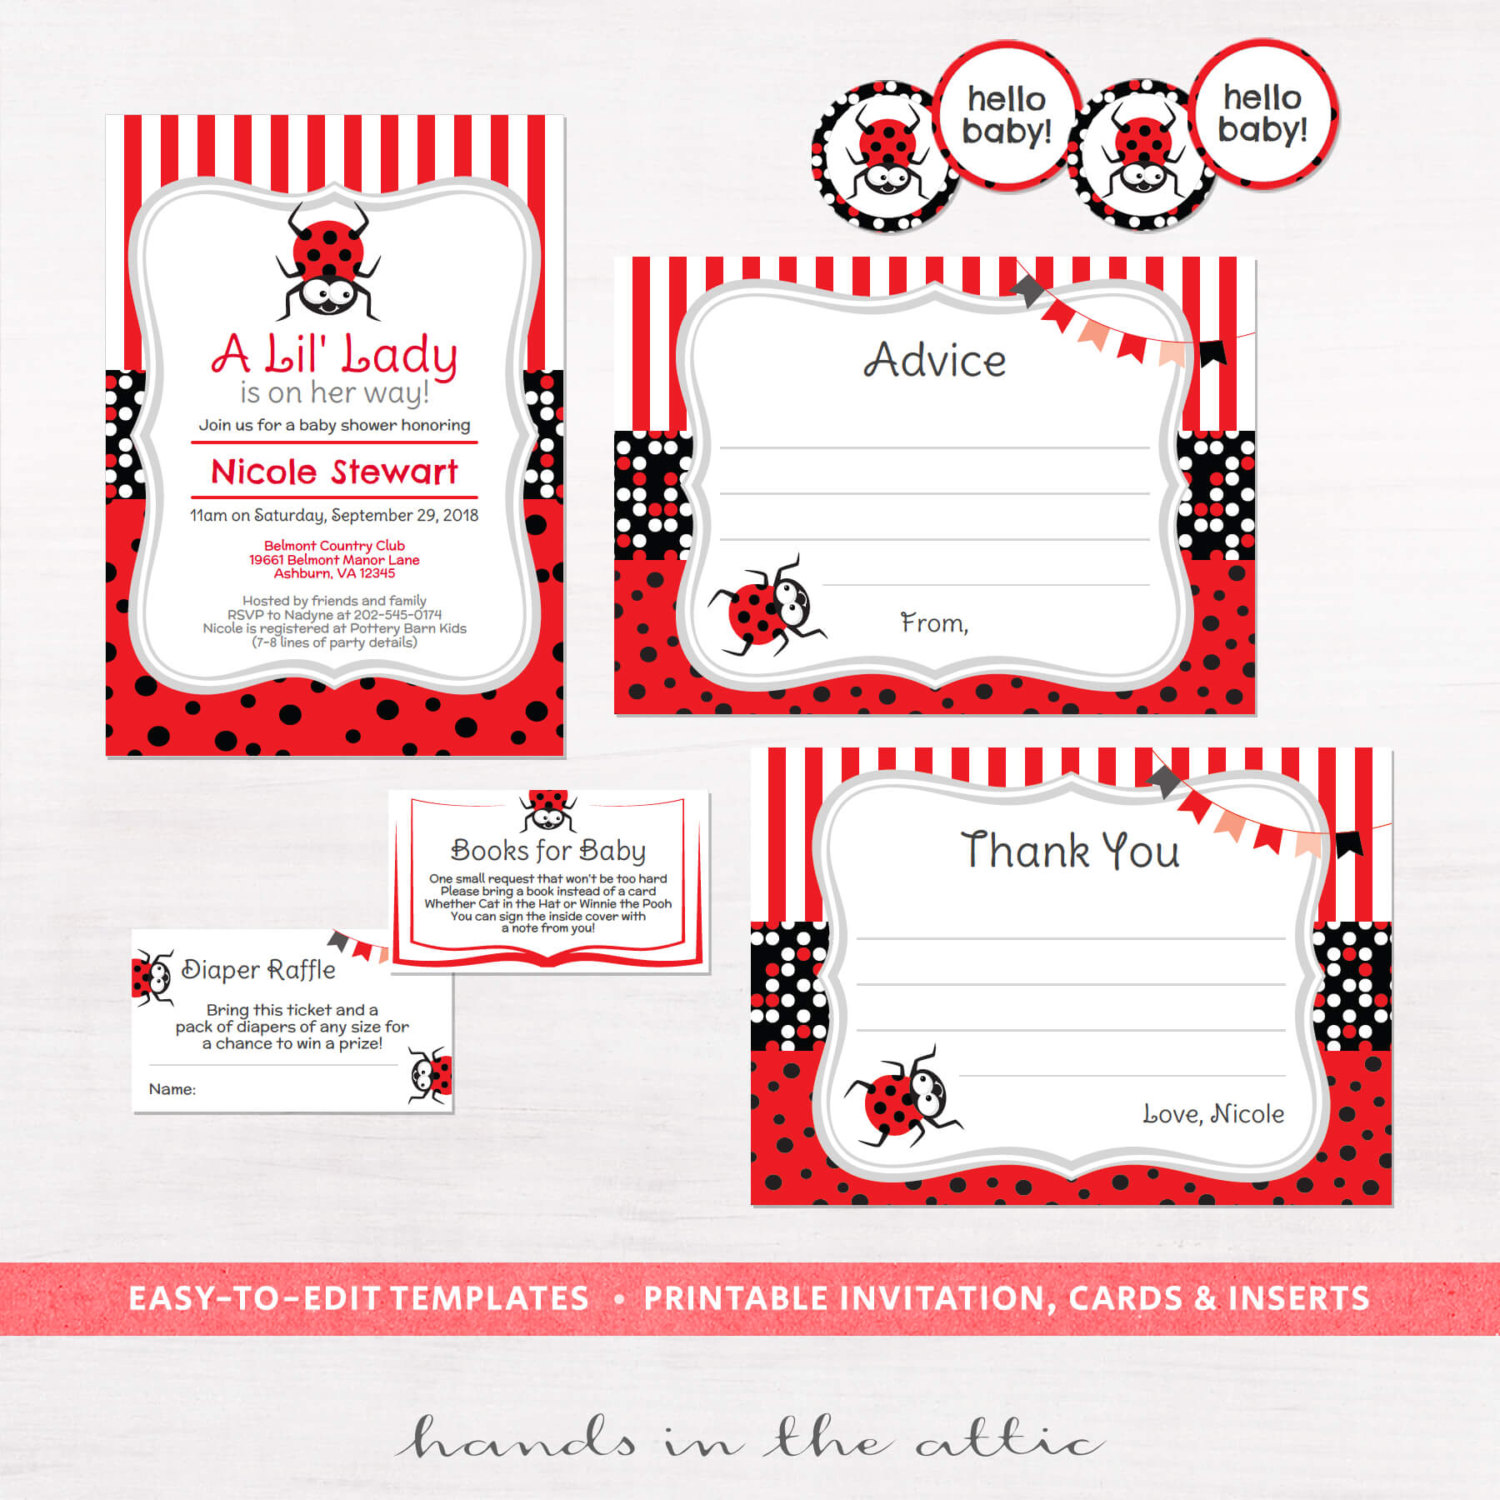 Baby Shower Invitation Kits | Print and personalize at home